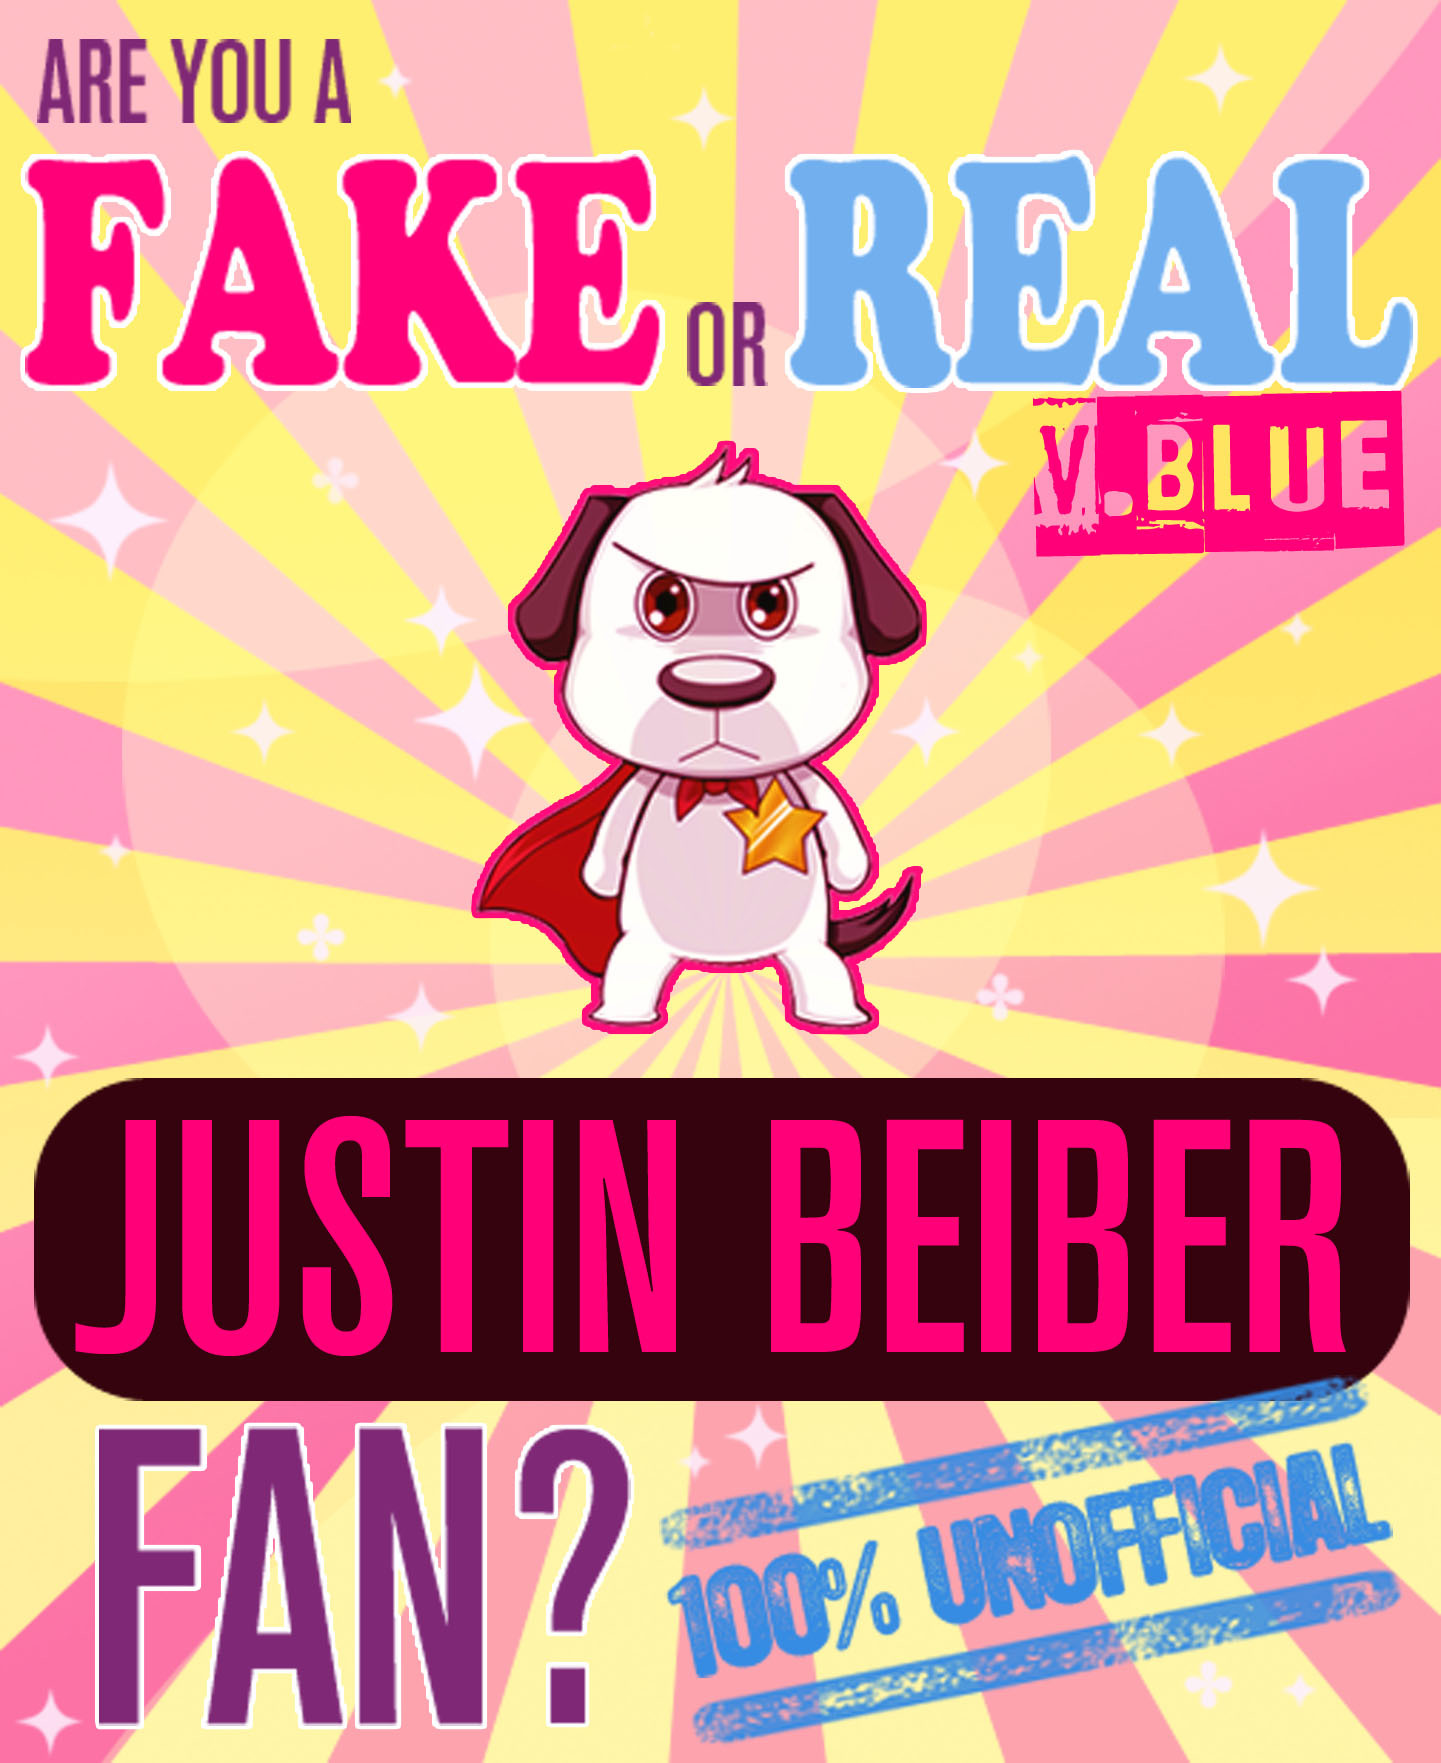 Are You a Fake or Real Justin Bieber Fan? Version Blue: The 100% Unofficial Quiz and Facts Trivia Travel Set Game